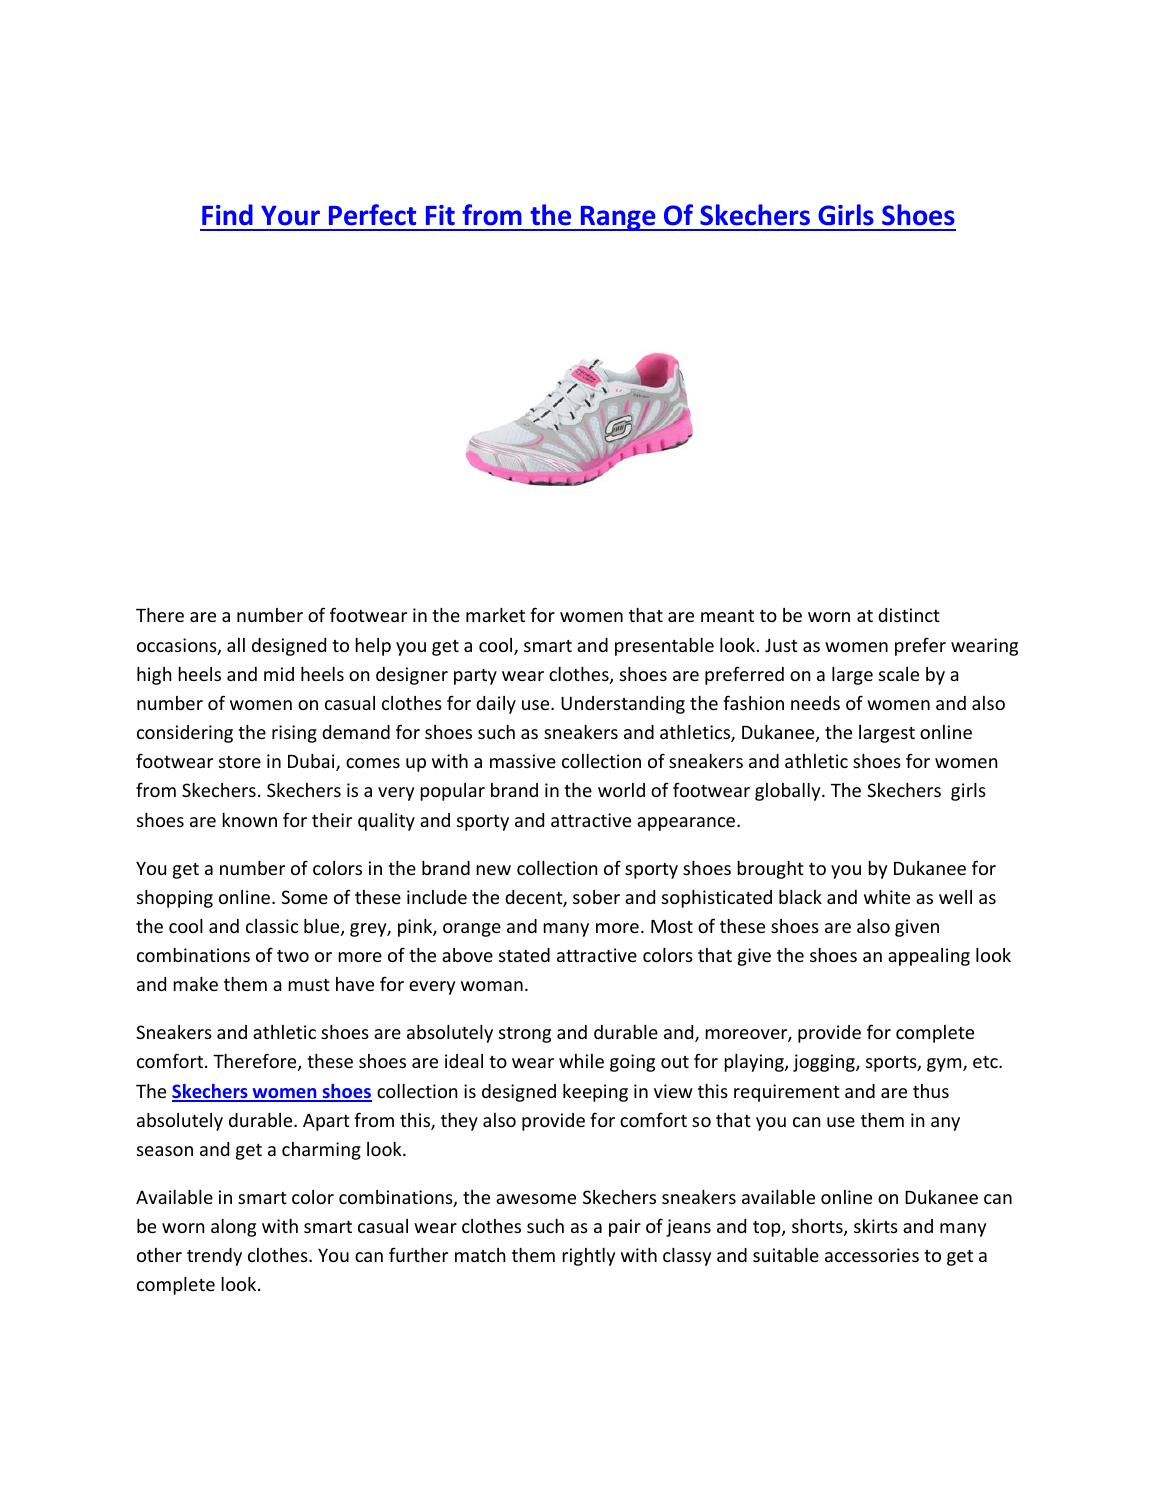 6ada195e612 Find Your Perfect Fit from the Range Of Skechers Girls Shoes by Dukanee -  issuu